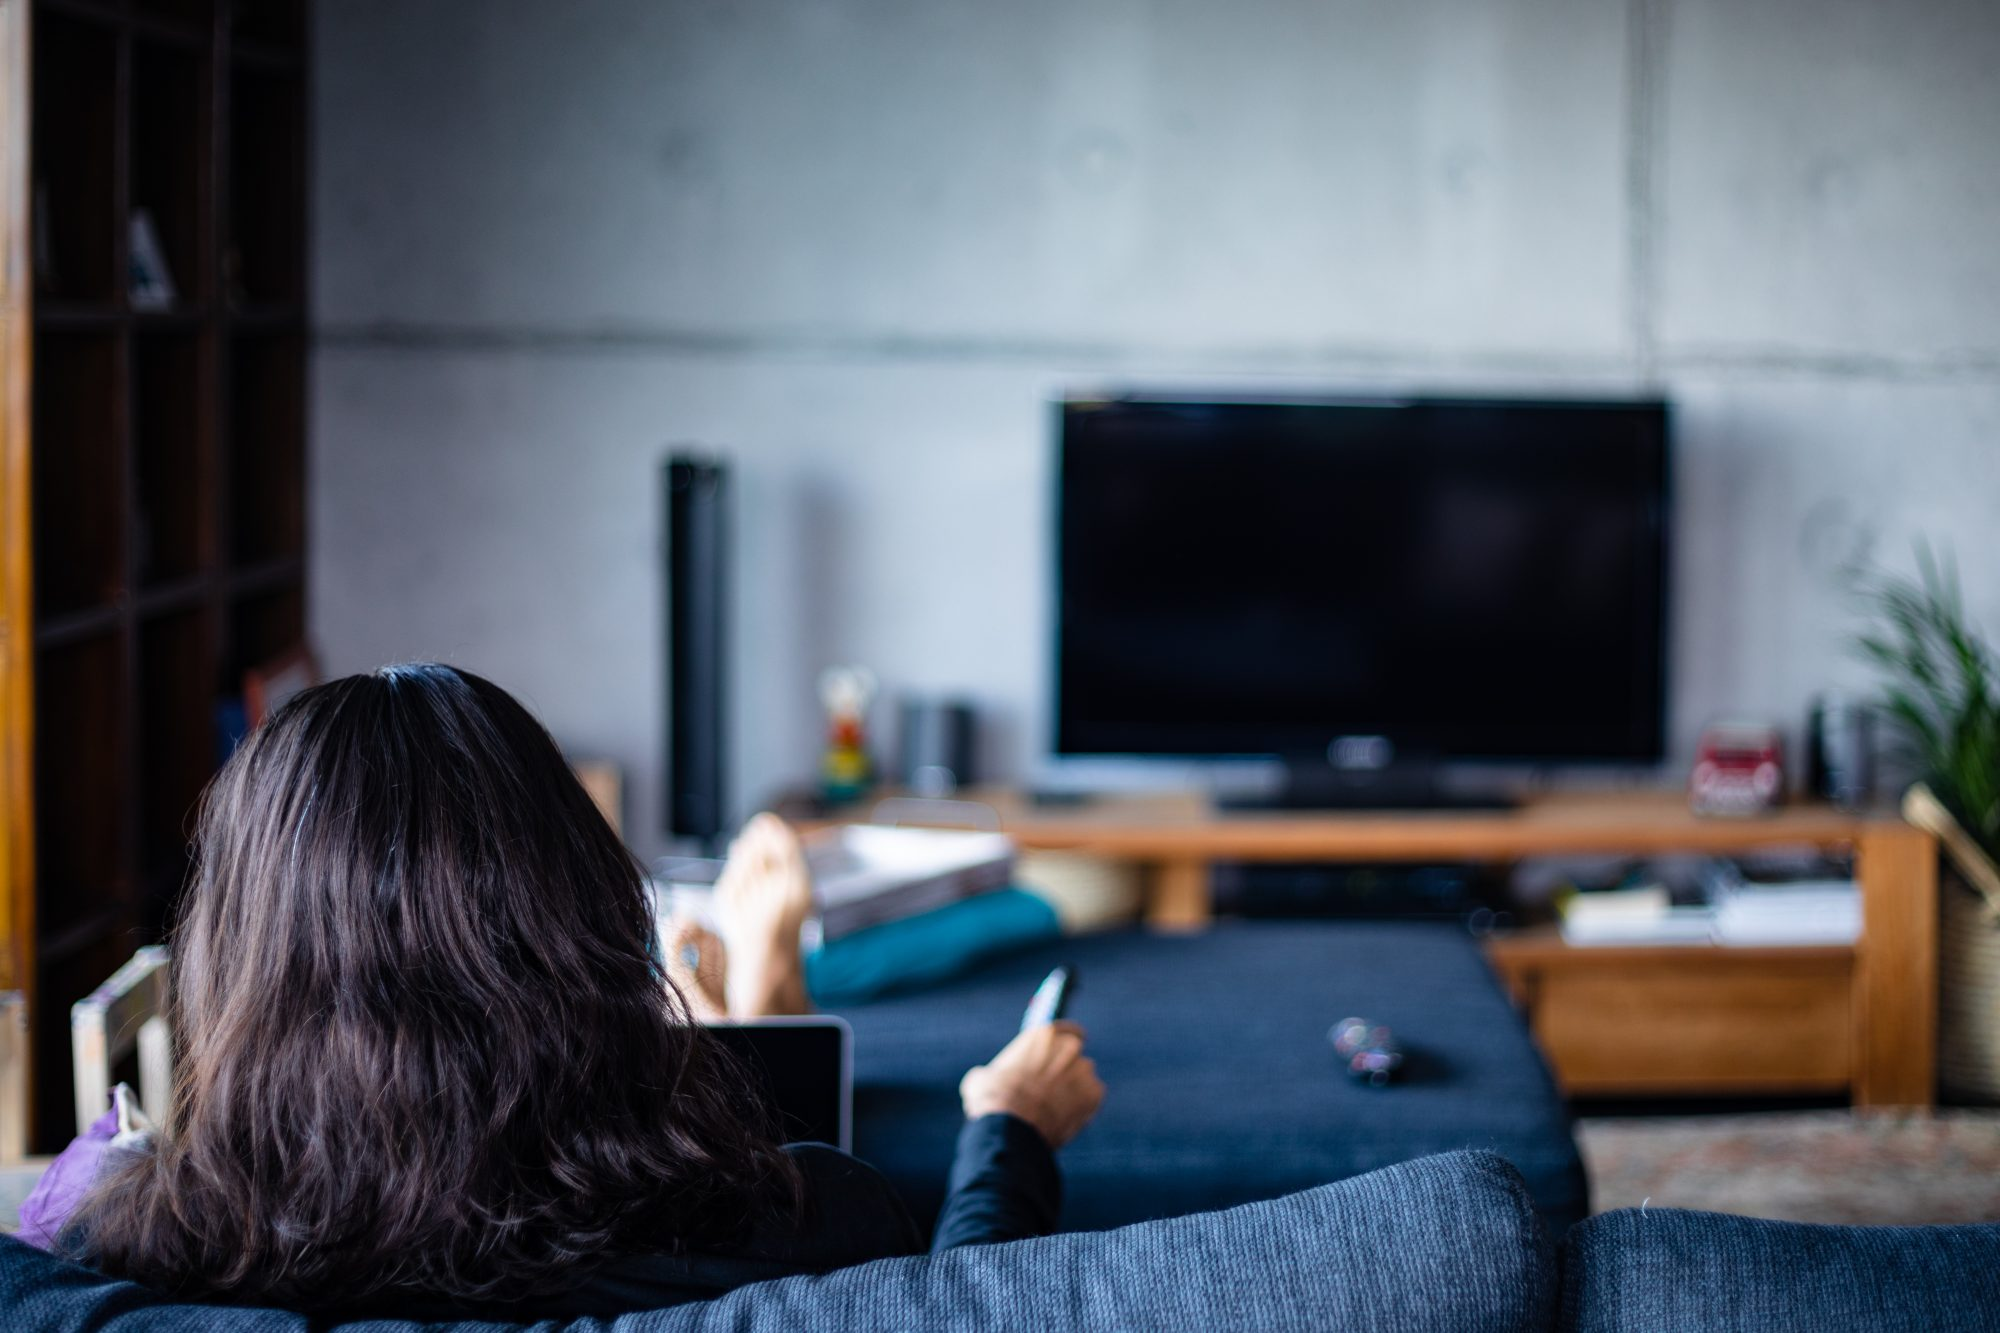 A man using laptop and watching TV using remote control